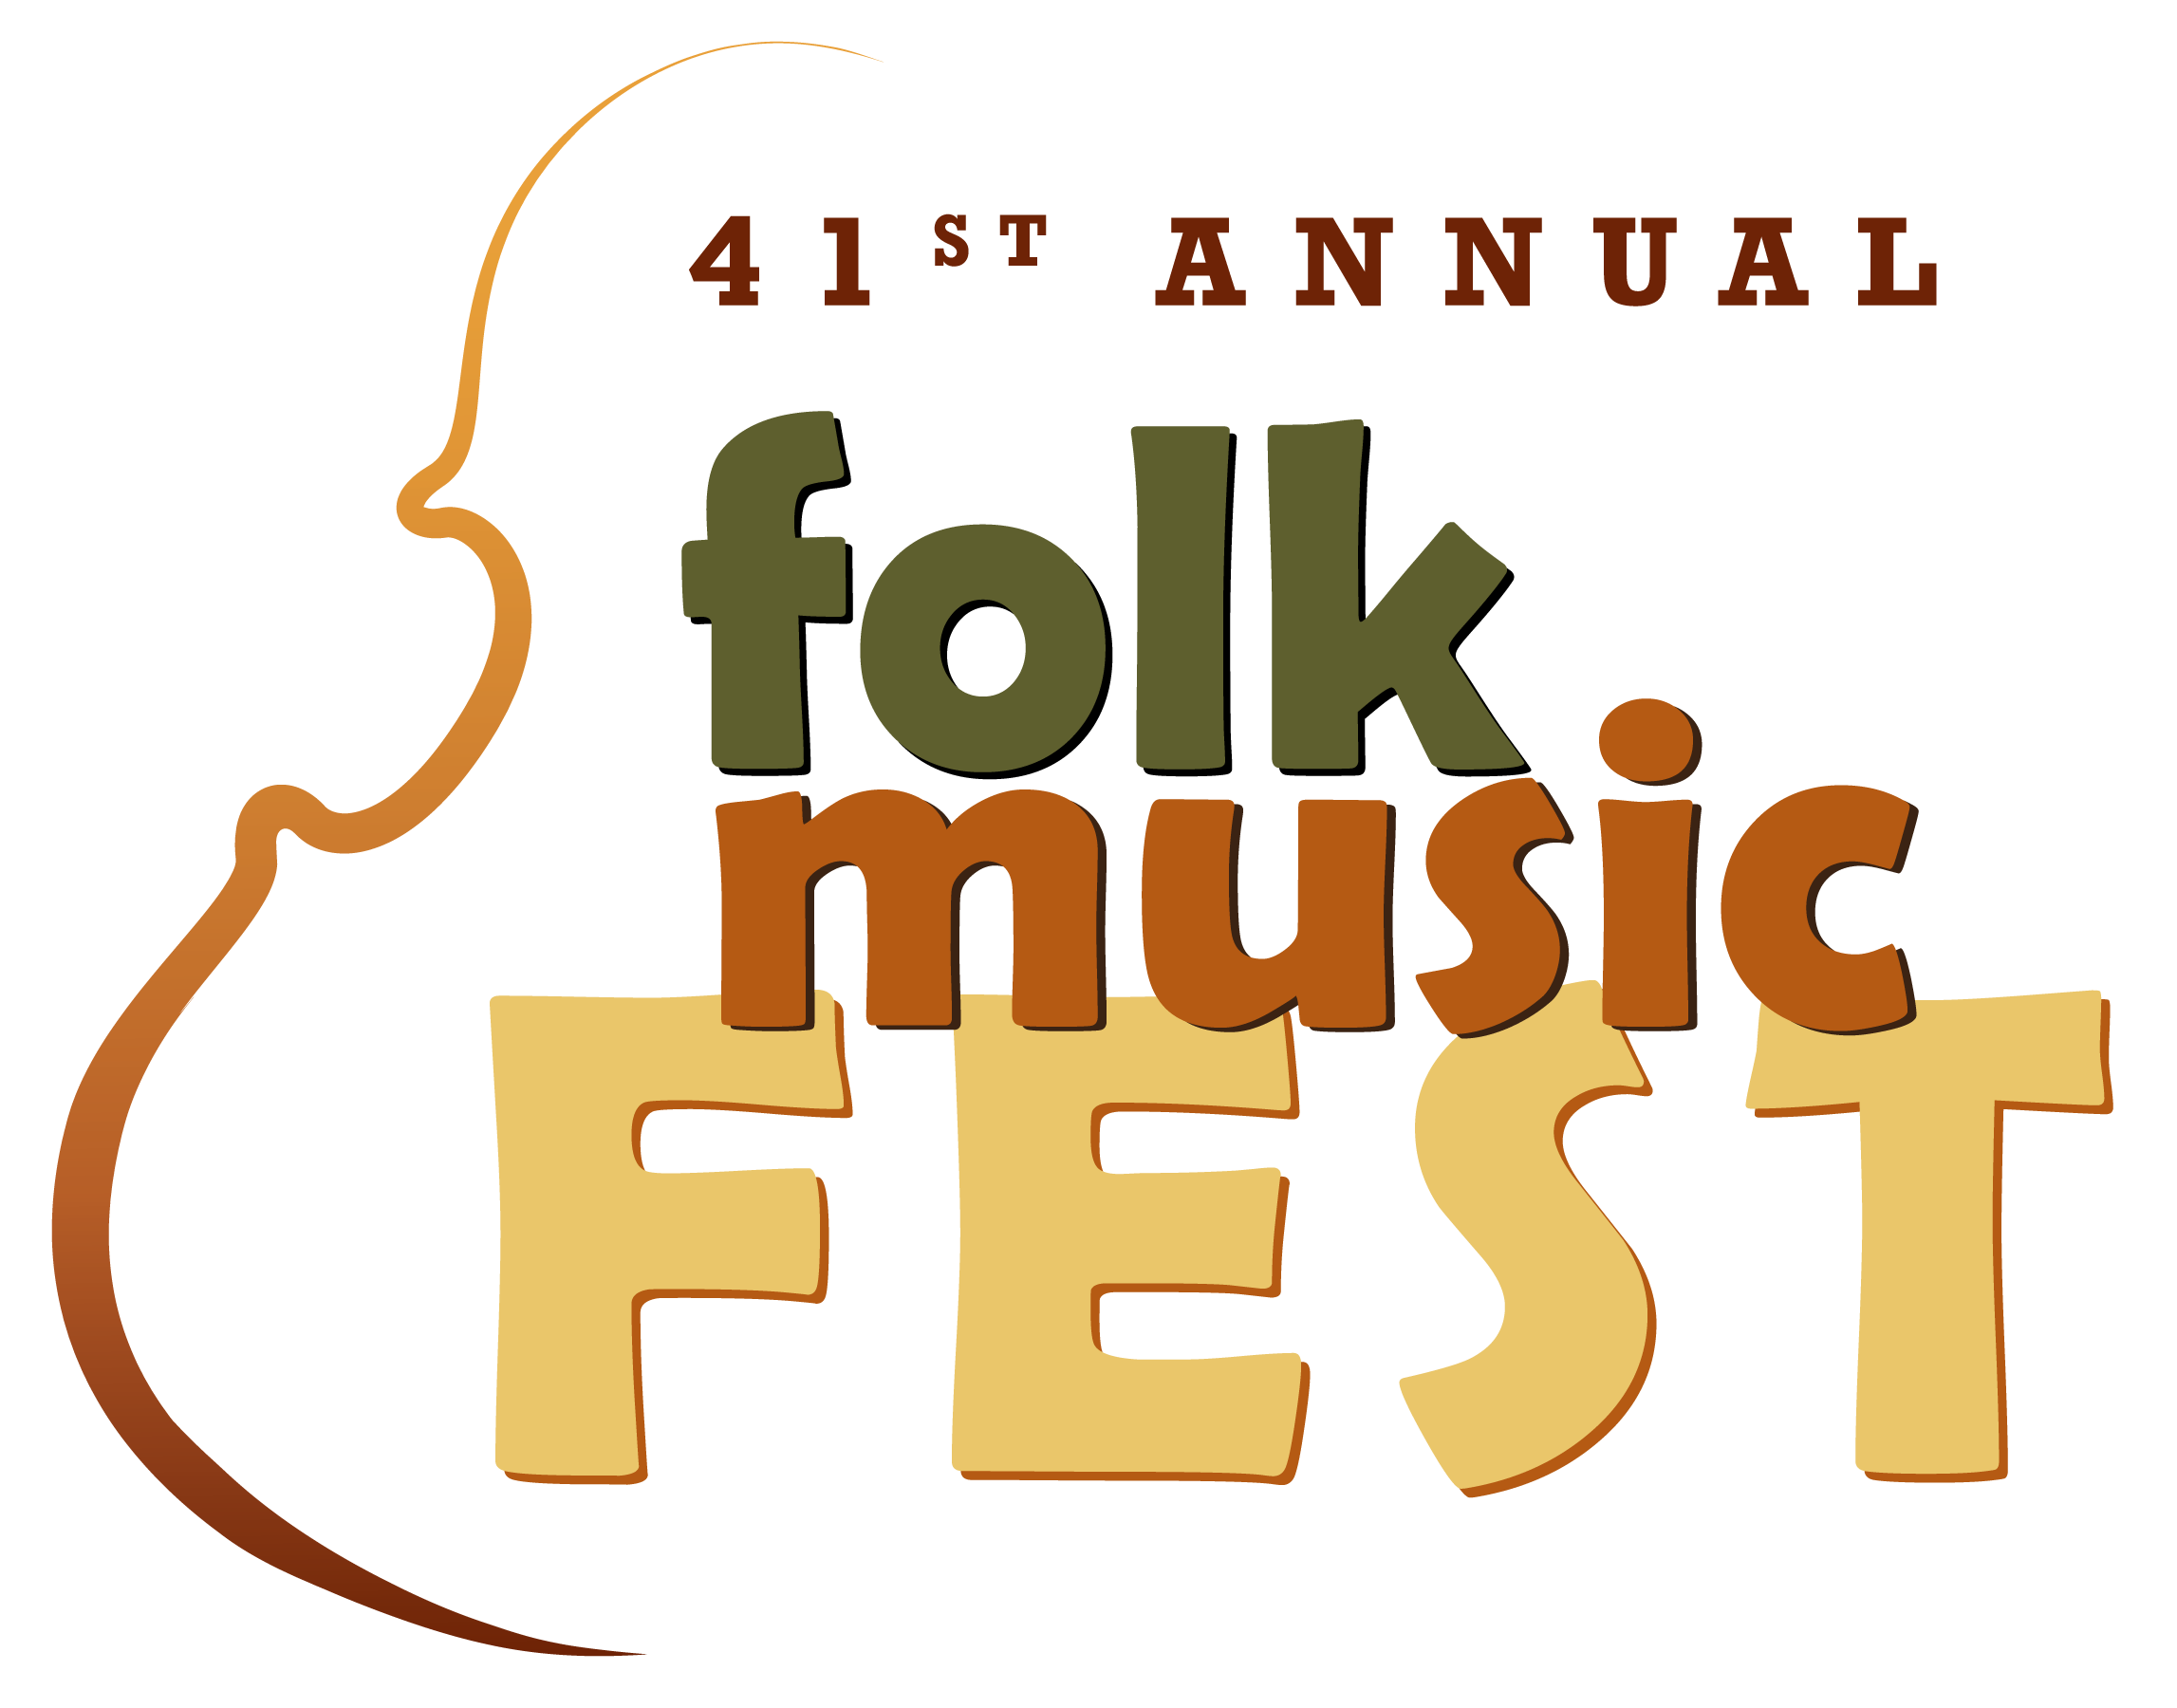 41st Annual Folk Music Festival